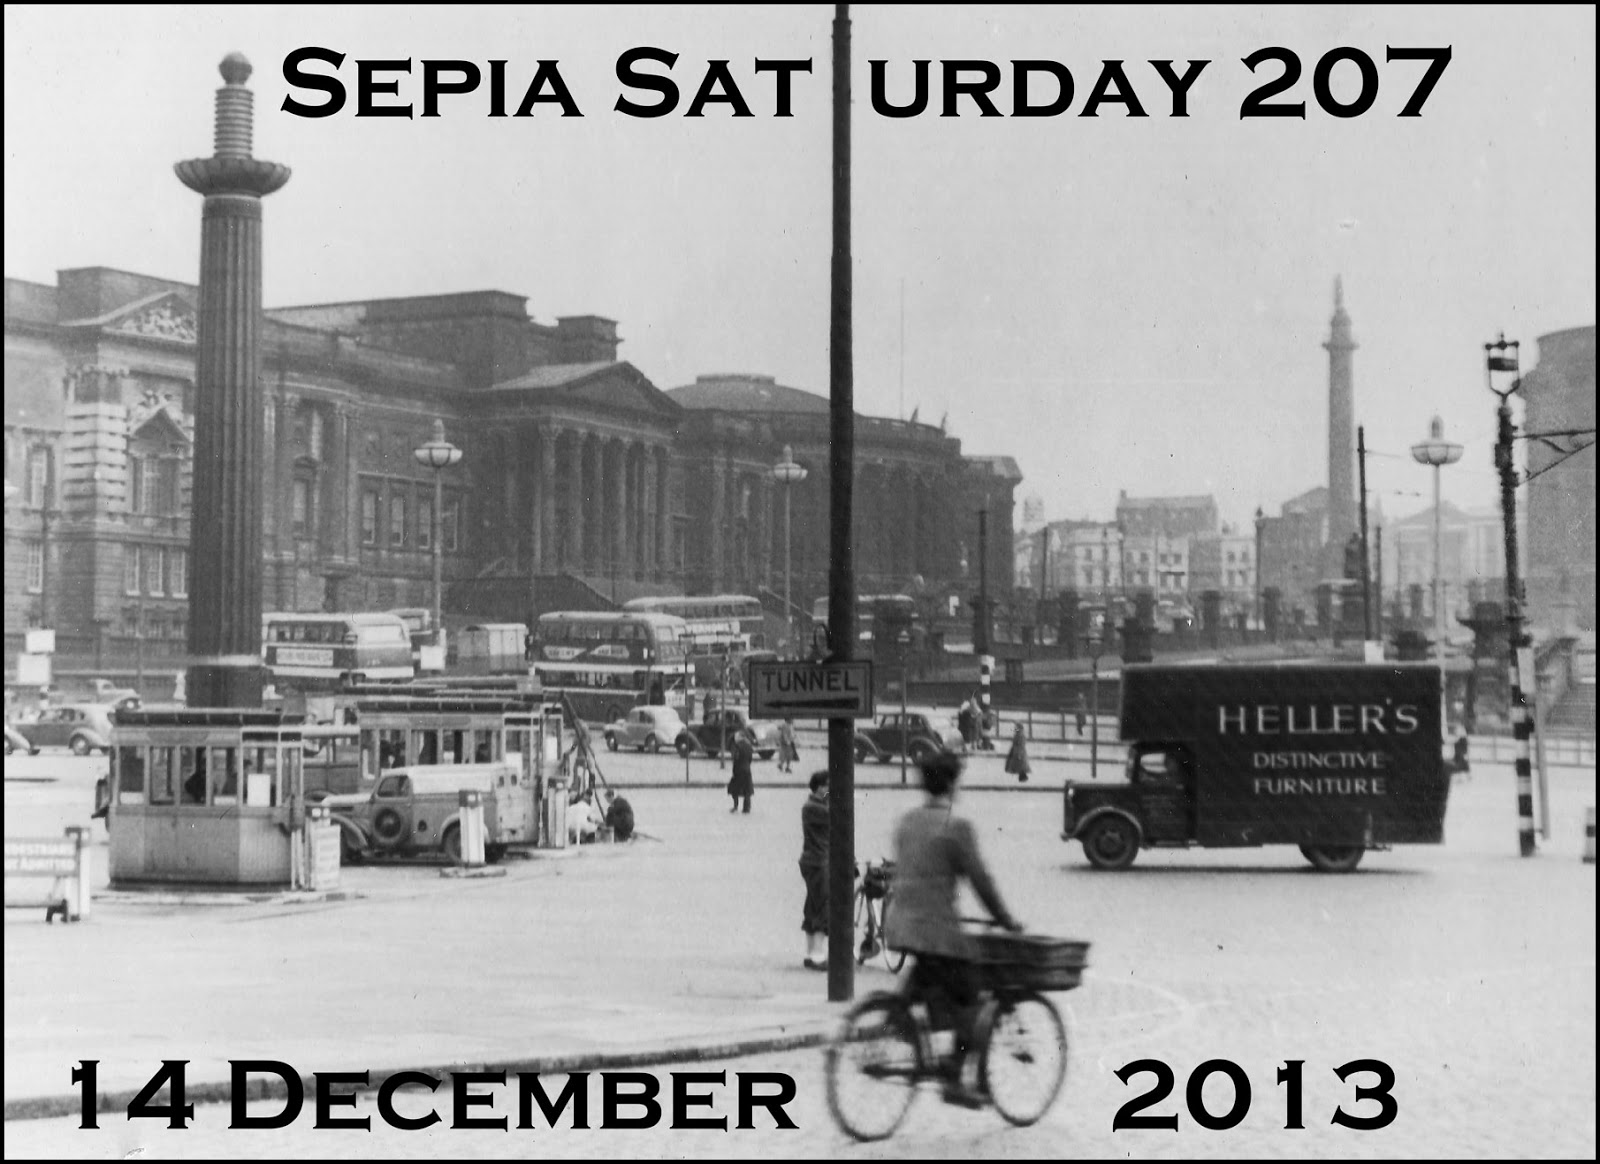 Sepia Saturday by Alan Burnett, Marilyn Brindley and Kat Mortensen